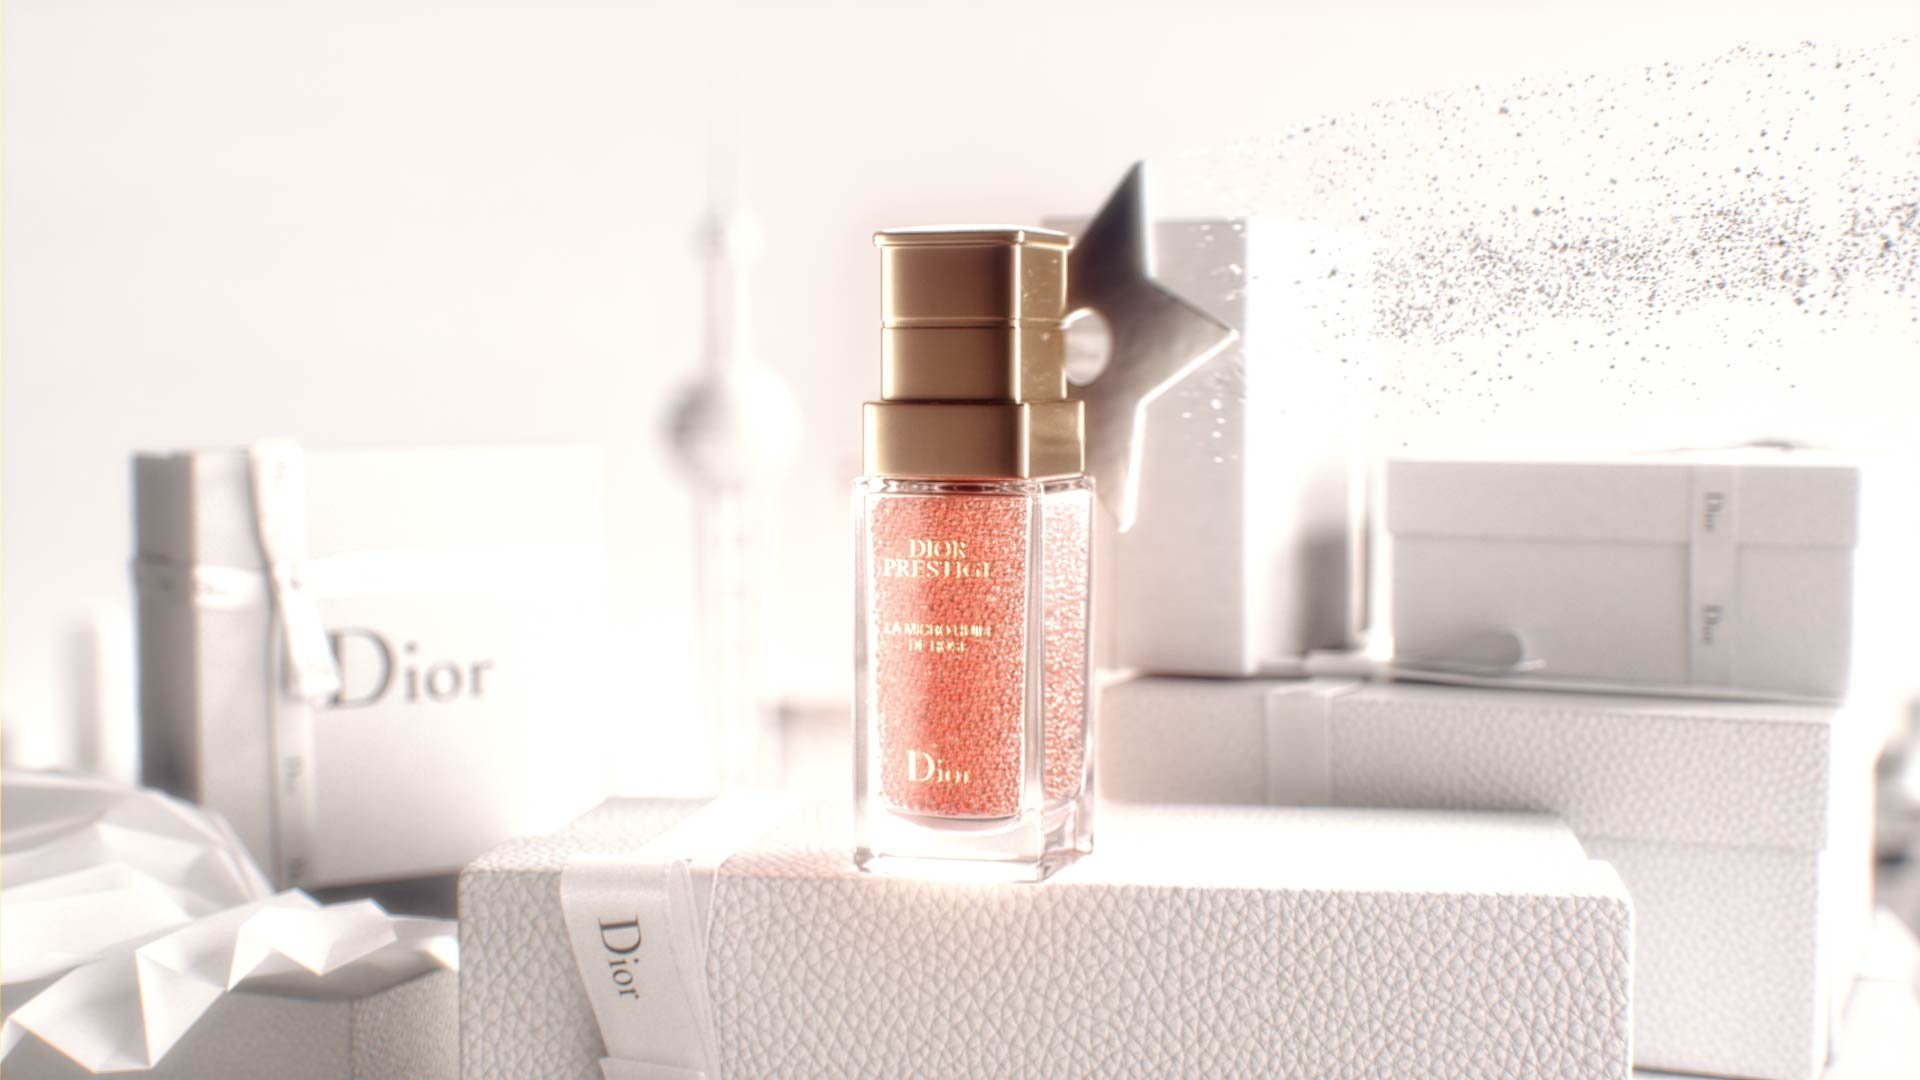 3D render of Dior Prestige product in a motion design animation